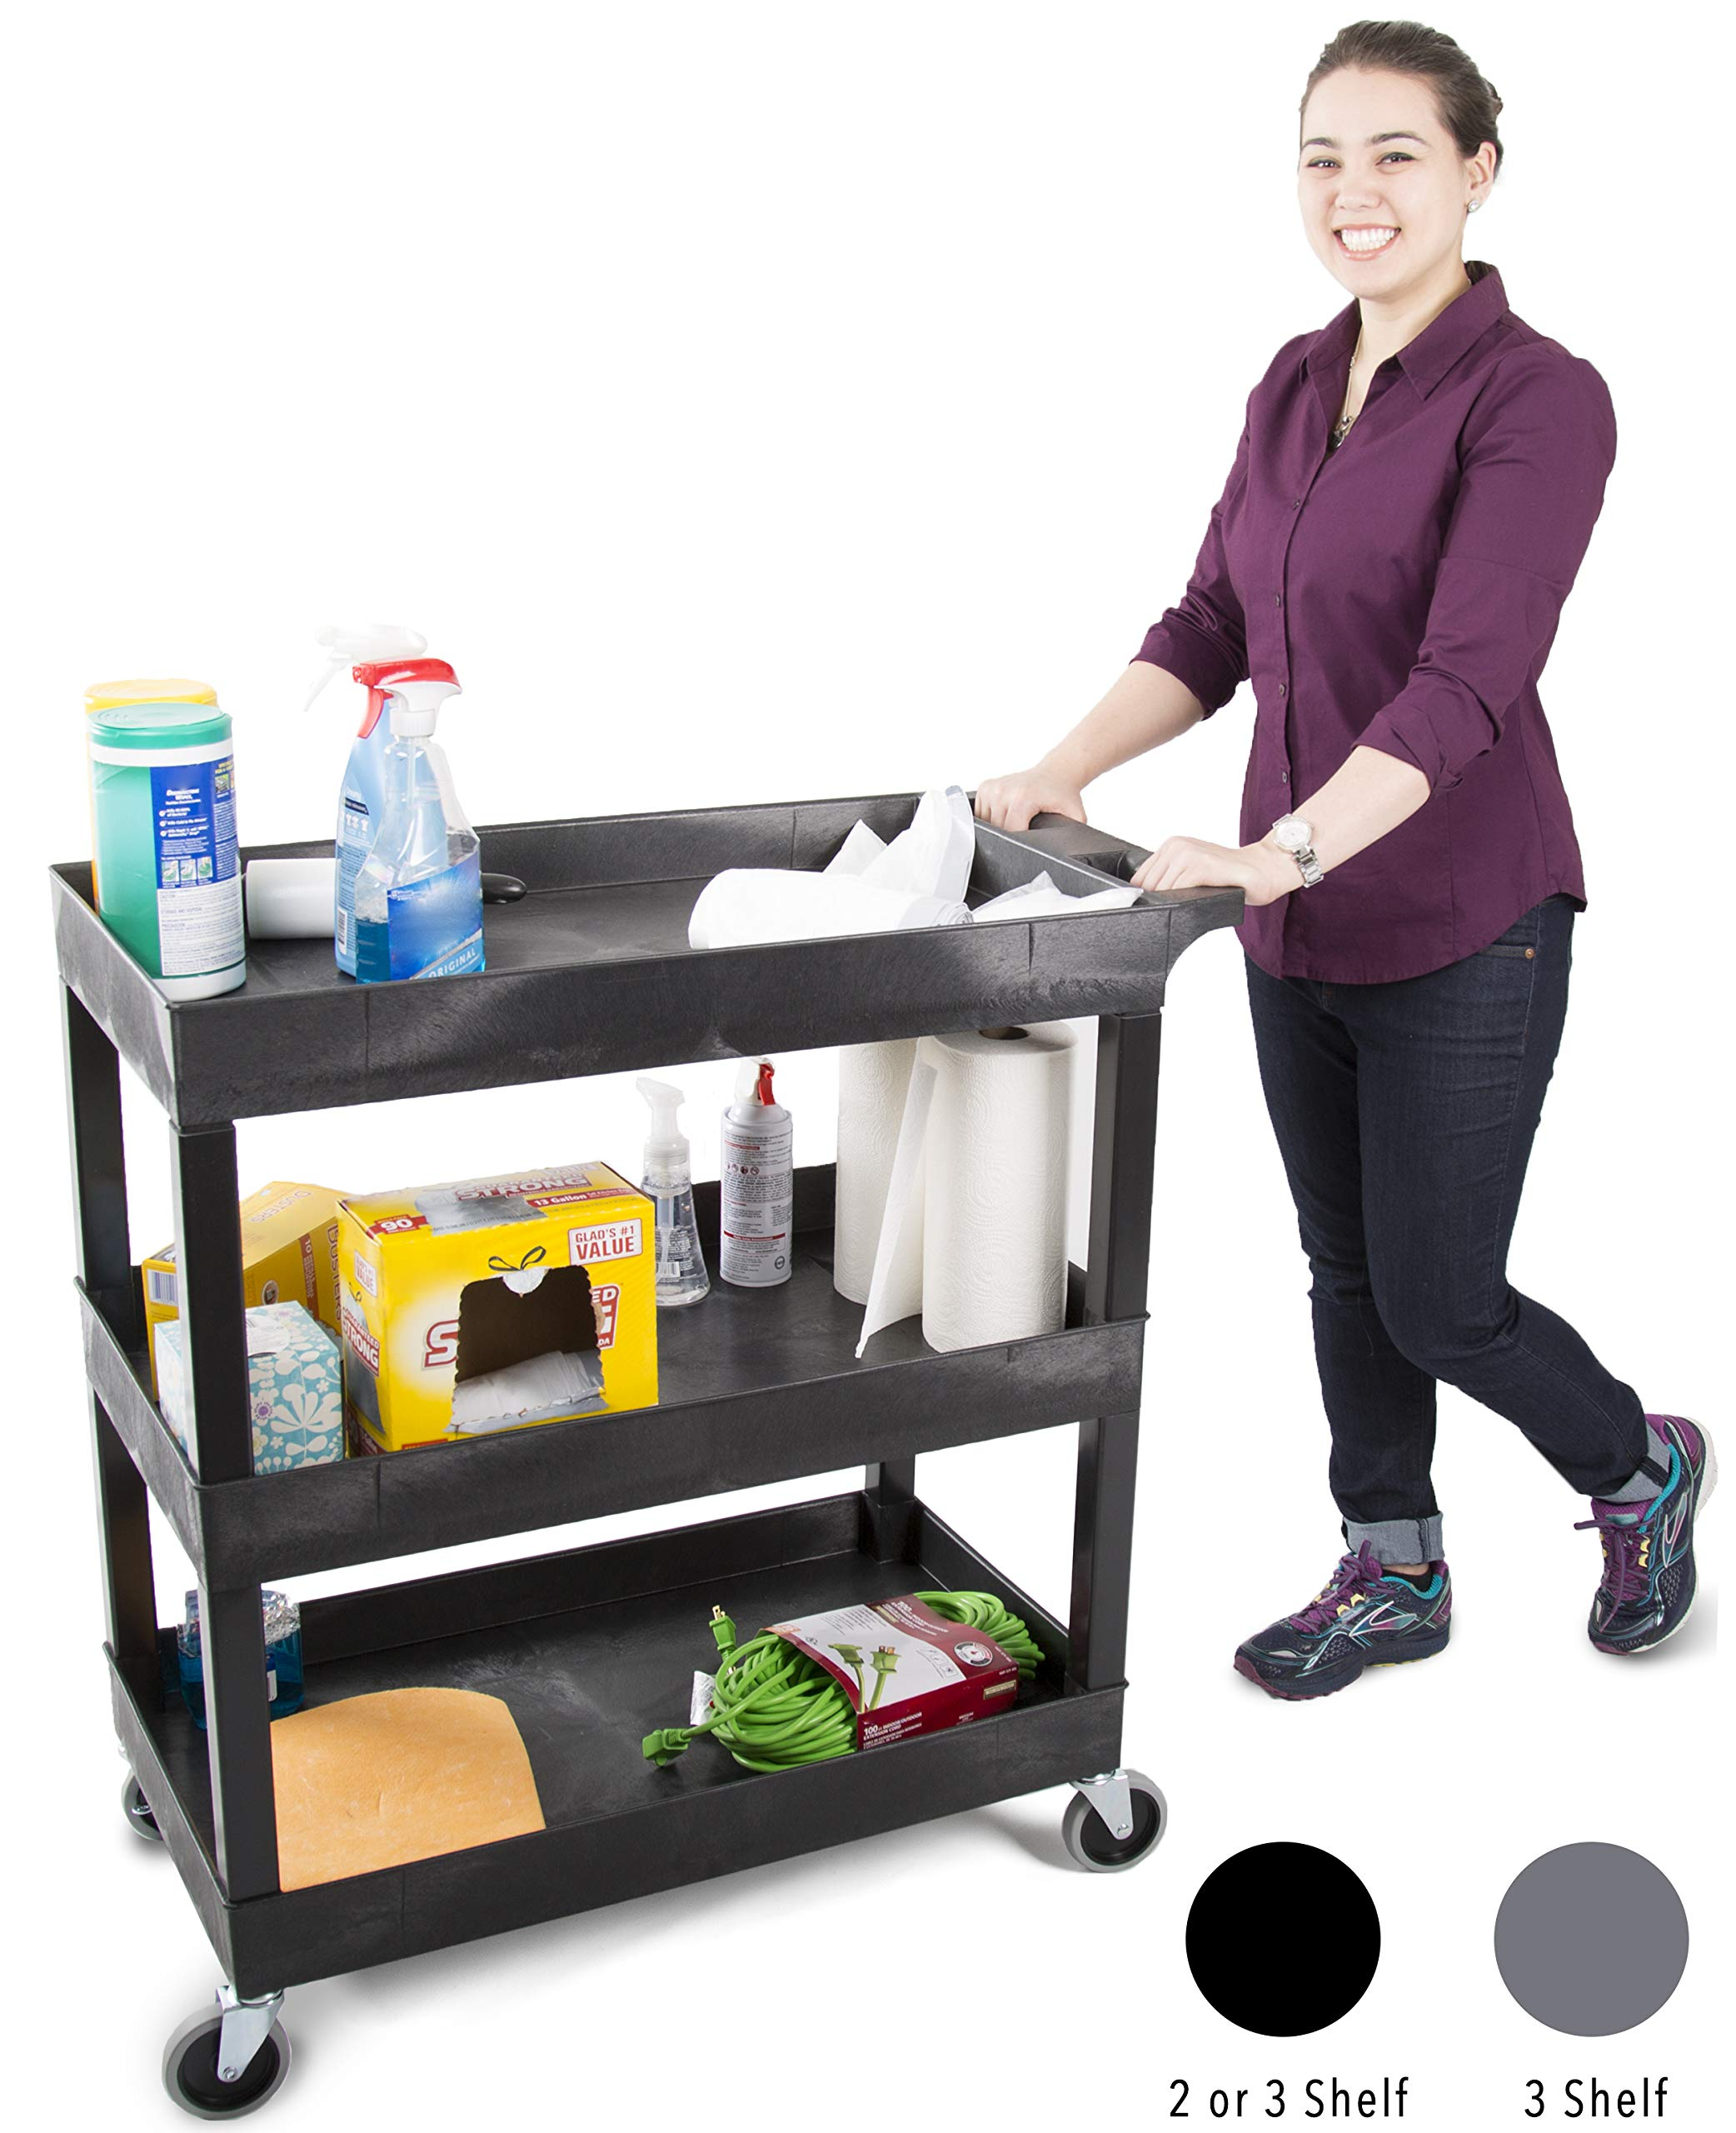 Original Tubstr 3 Shelf Utility Cart/Service Cart - Heavy Duty - Supports up to 400 lbs - Tub Carts w/Deep Shelves - Great for Warehouse, Garage, Cleaning and More (3 Shelf - 32 x 18 / Black) by Stand Steady